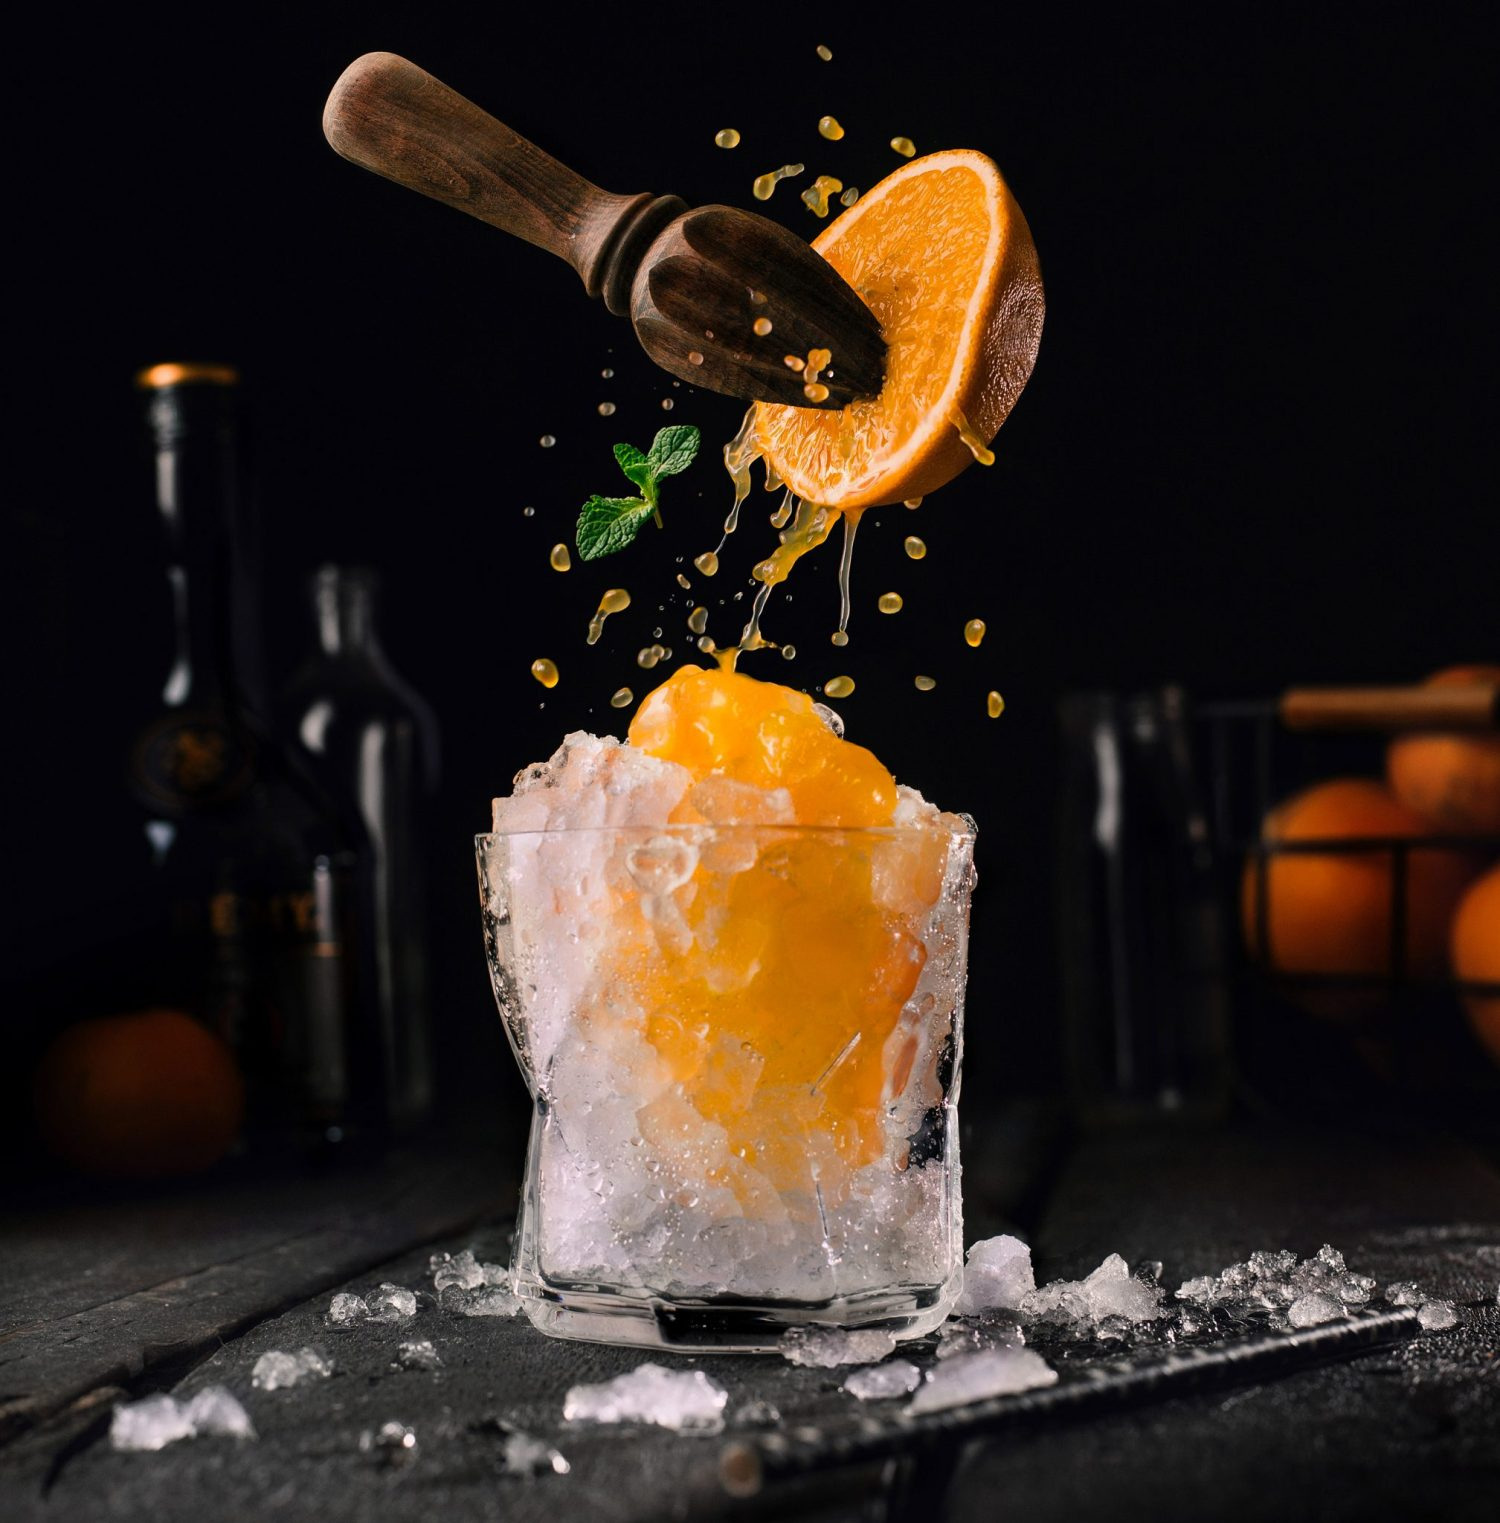 creative food photography ideas orange juice by pavel sablya